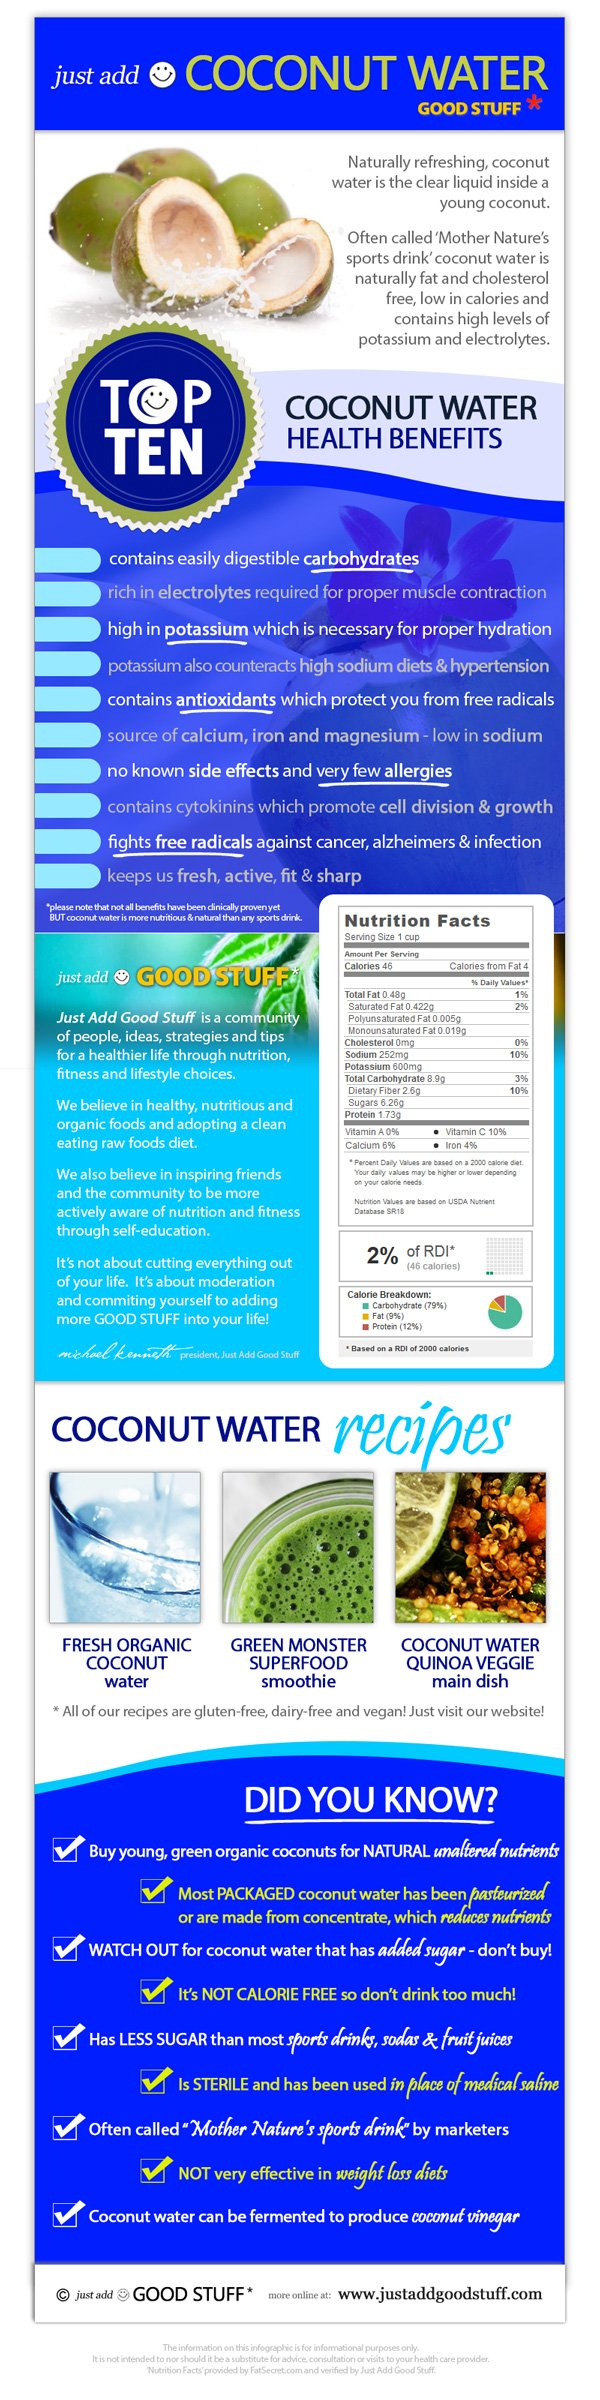 Health Benefits of Coconut Water - Infographic